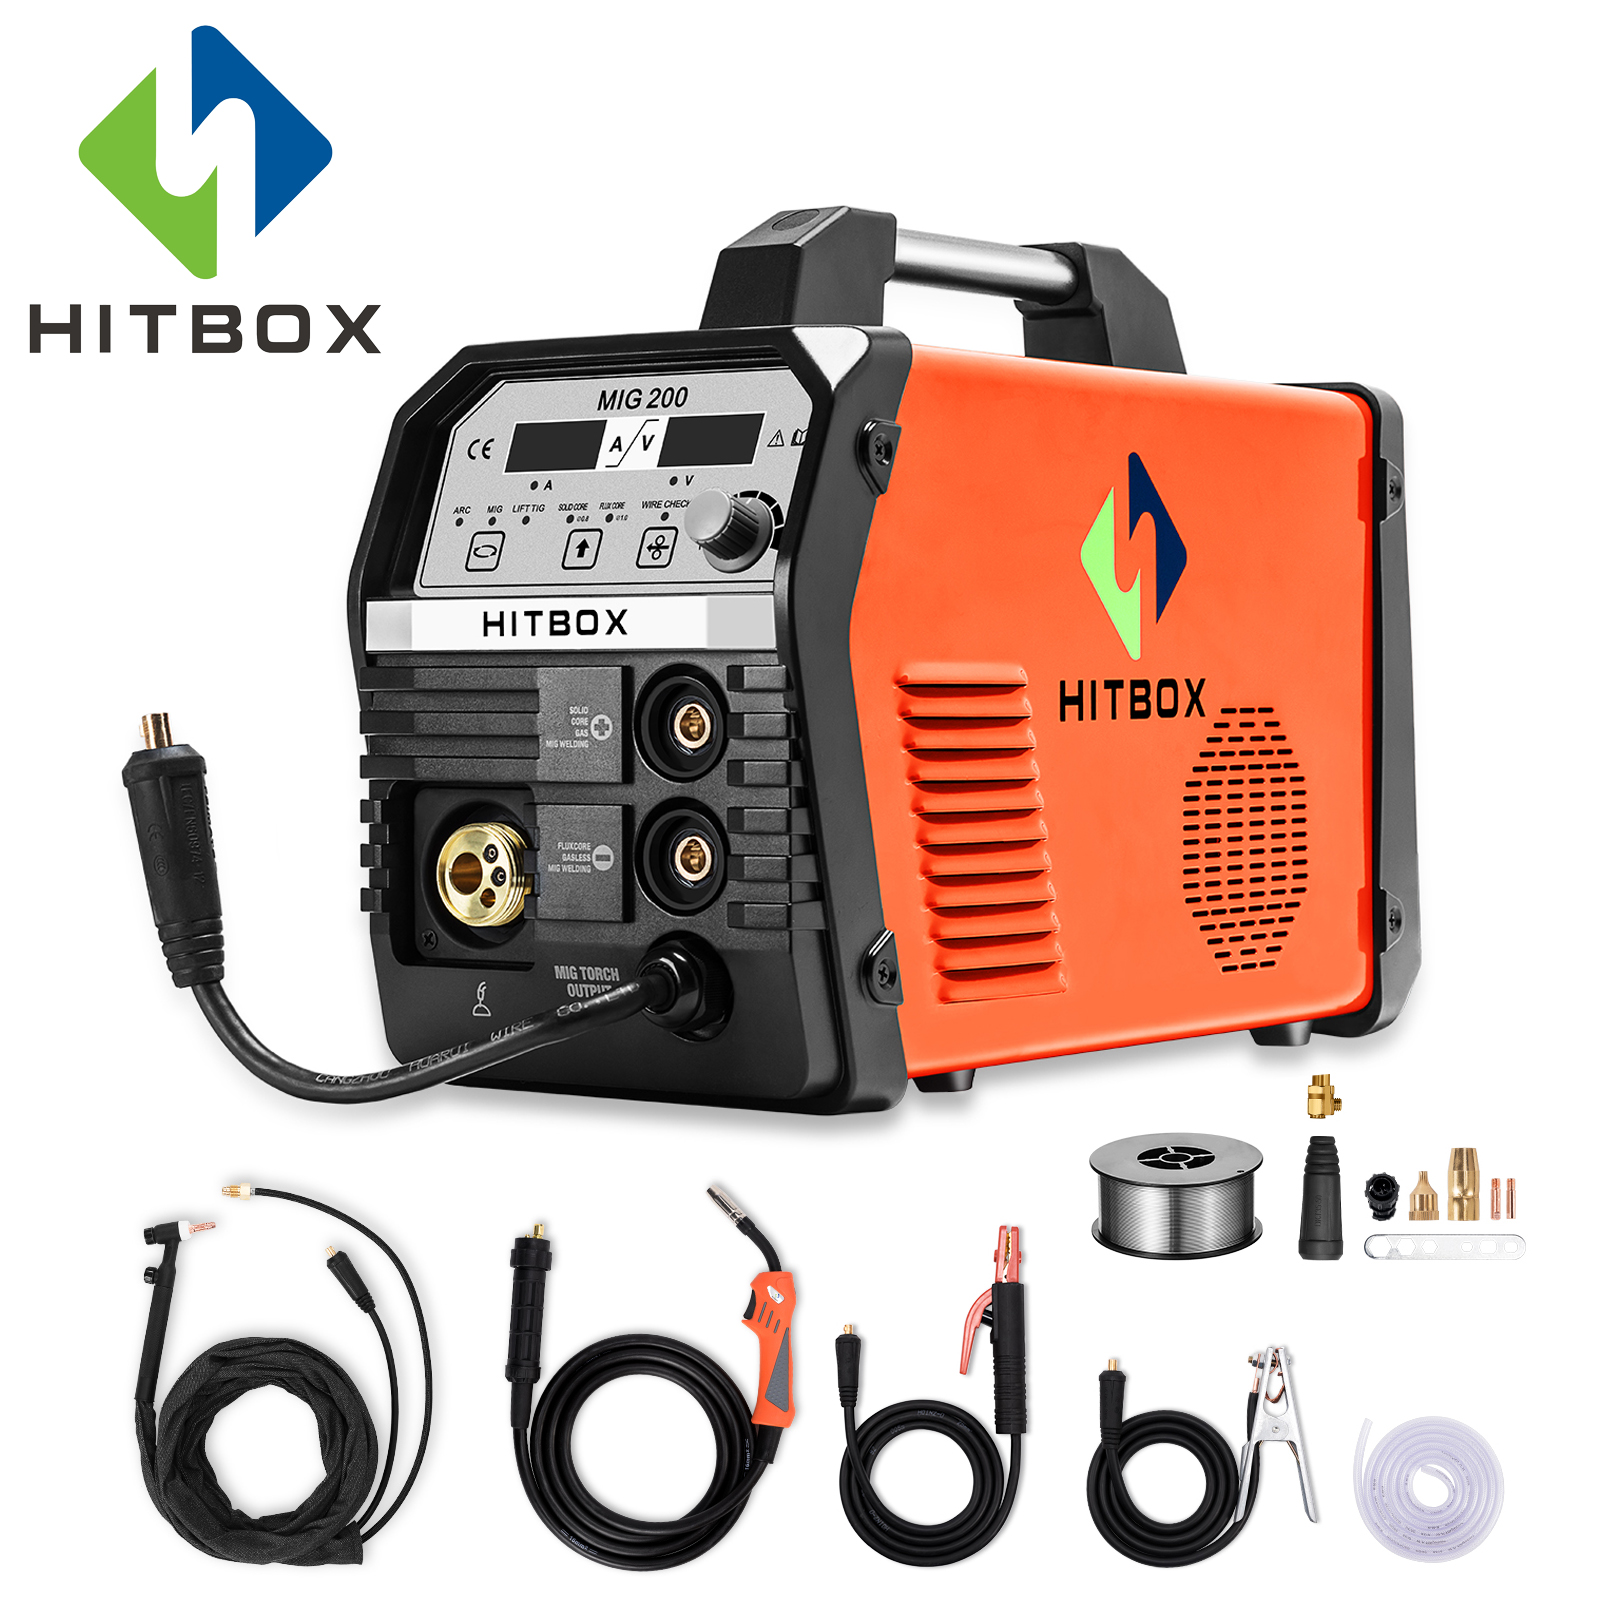 HITBOX MIG Welders MIG200A 220V Gas MIG Welding Machine 200A For Stainless And Carbon Steel Welding With AccessoriesHITBOX MIG Welders MIG200A 220V Gas MIG Welding Machine 200A For Stainless And Carbon Steel Welding With Accessories